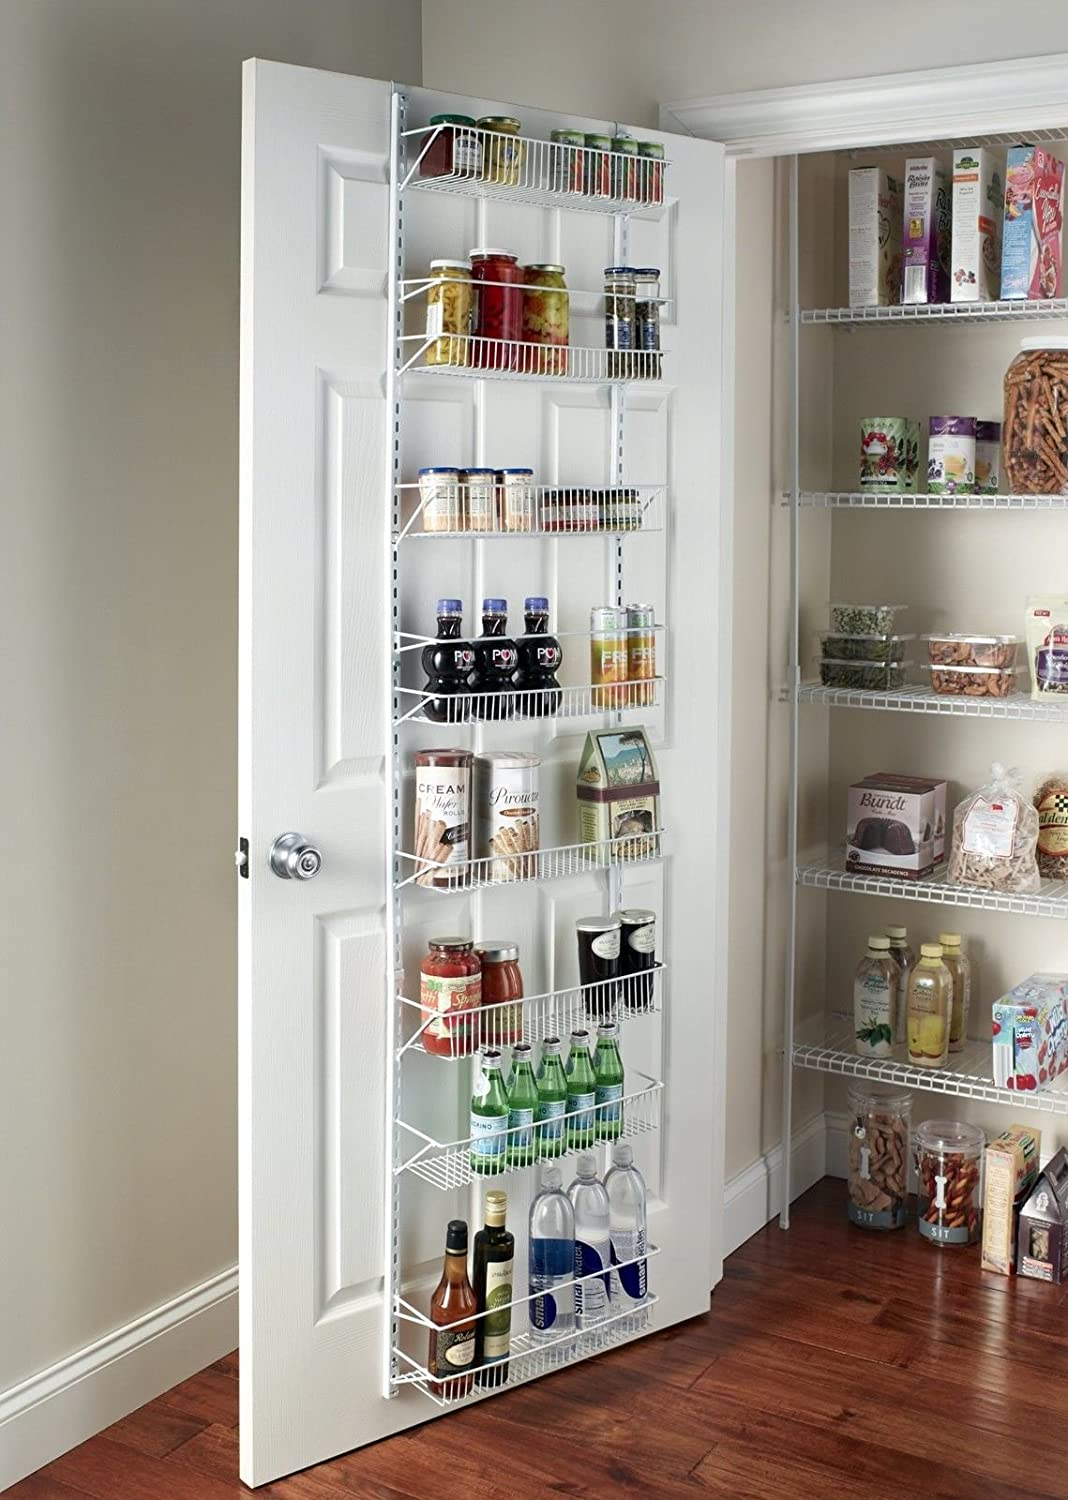 Over-the-Door Pantry Organizer